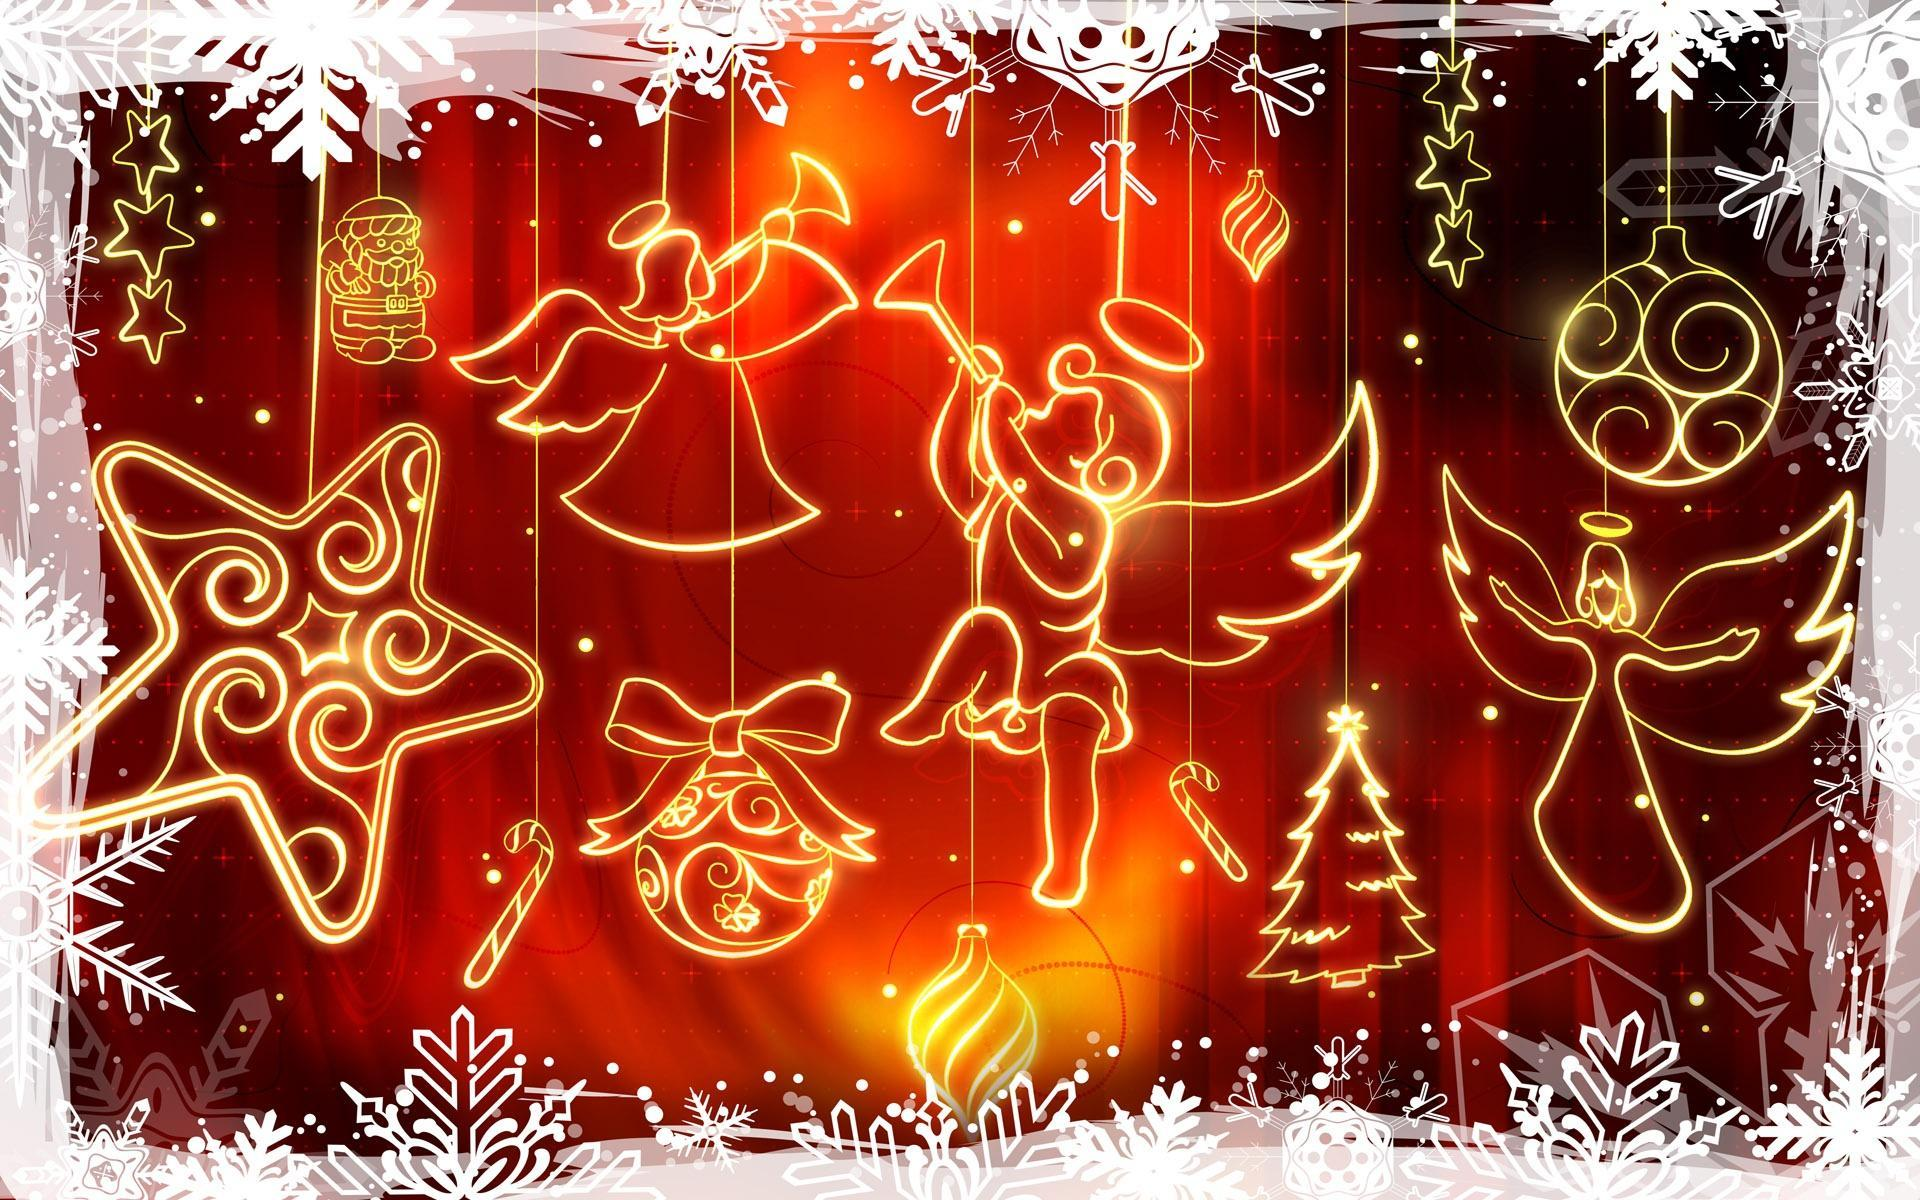 Abstract Christmas Christmas Wallpaper 1920 X 1080 Wallpaper